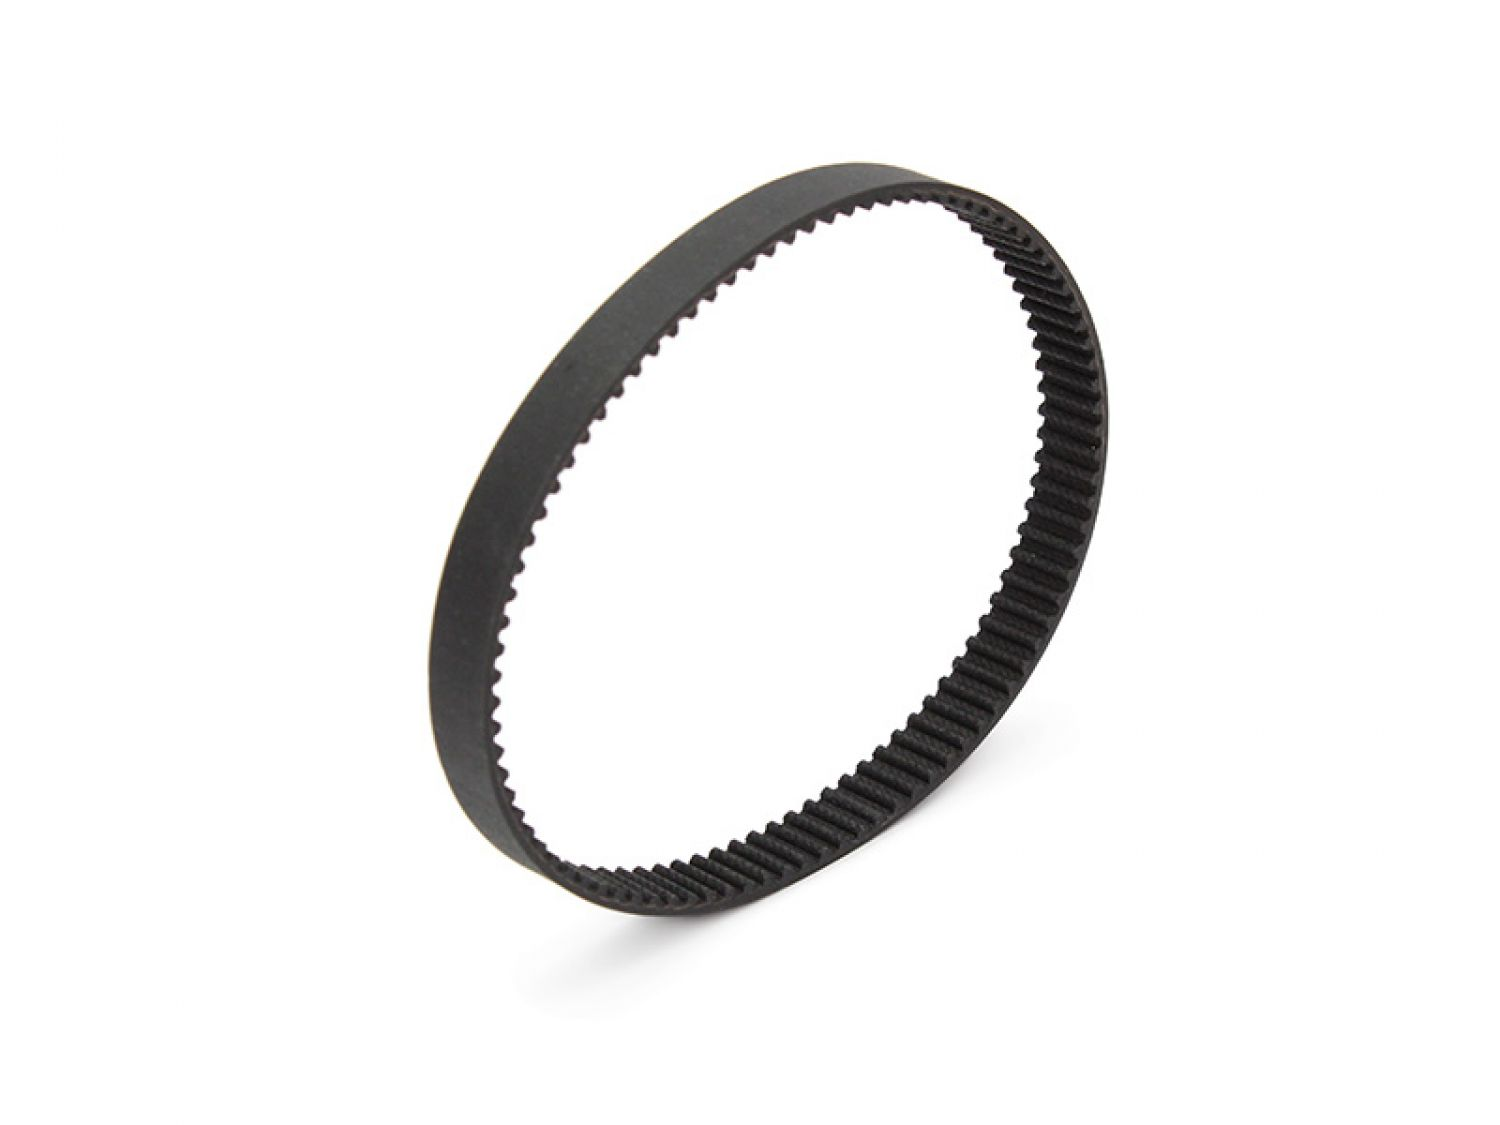 HTD 3 mm pitch 105-291 mm long 15 mm largeur